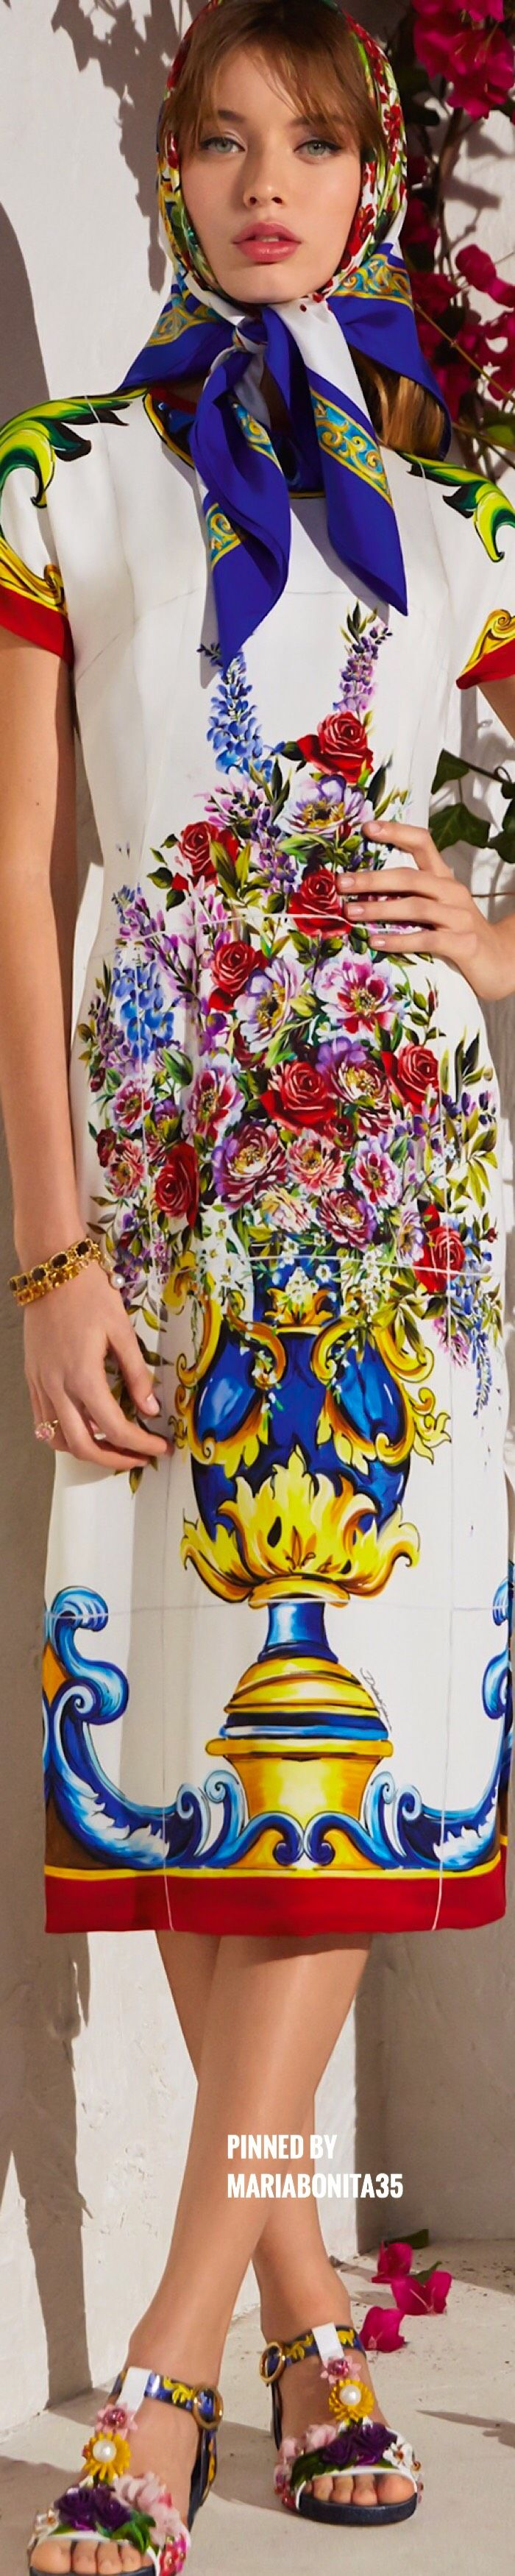 Dolce and Gabbana Caltagirone Collection